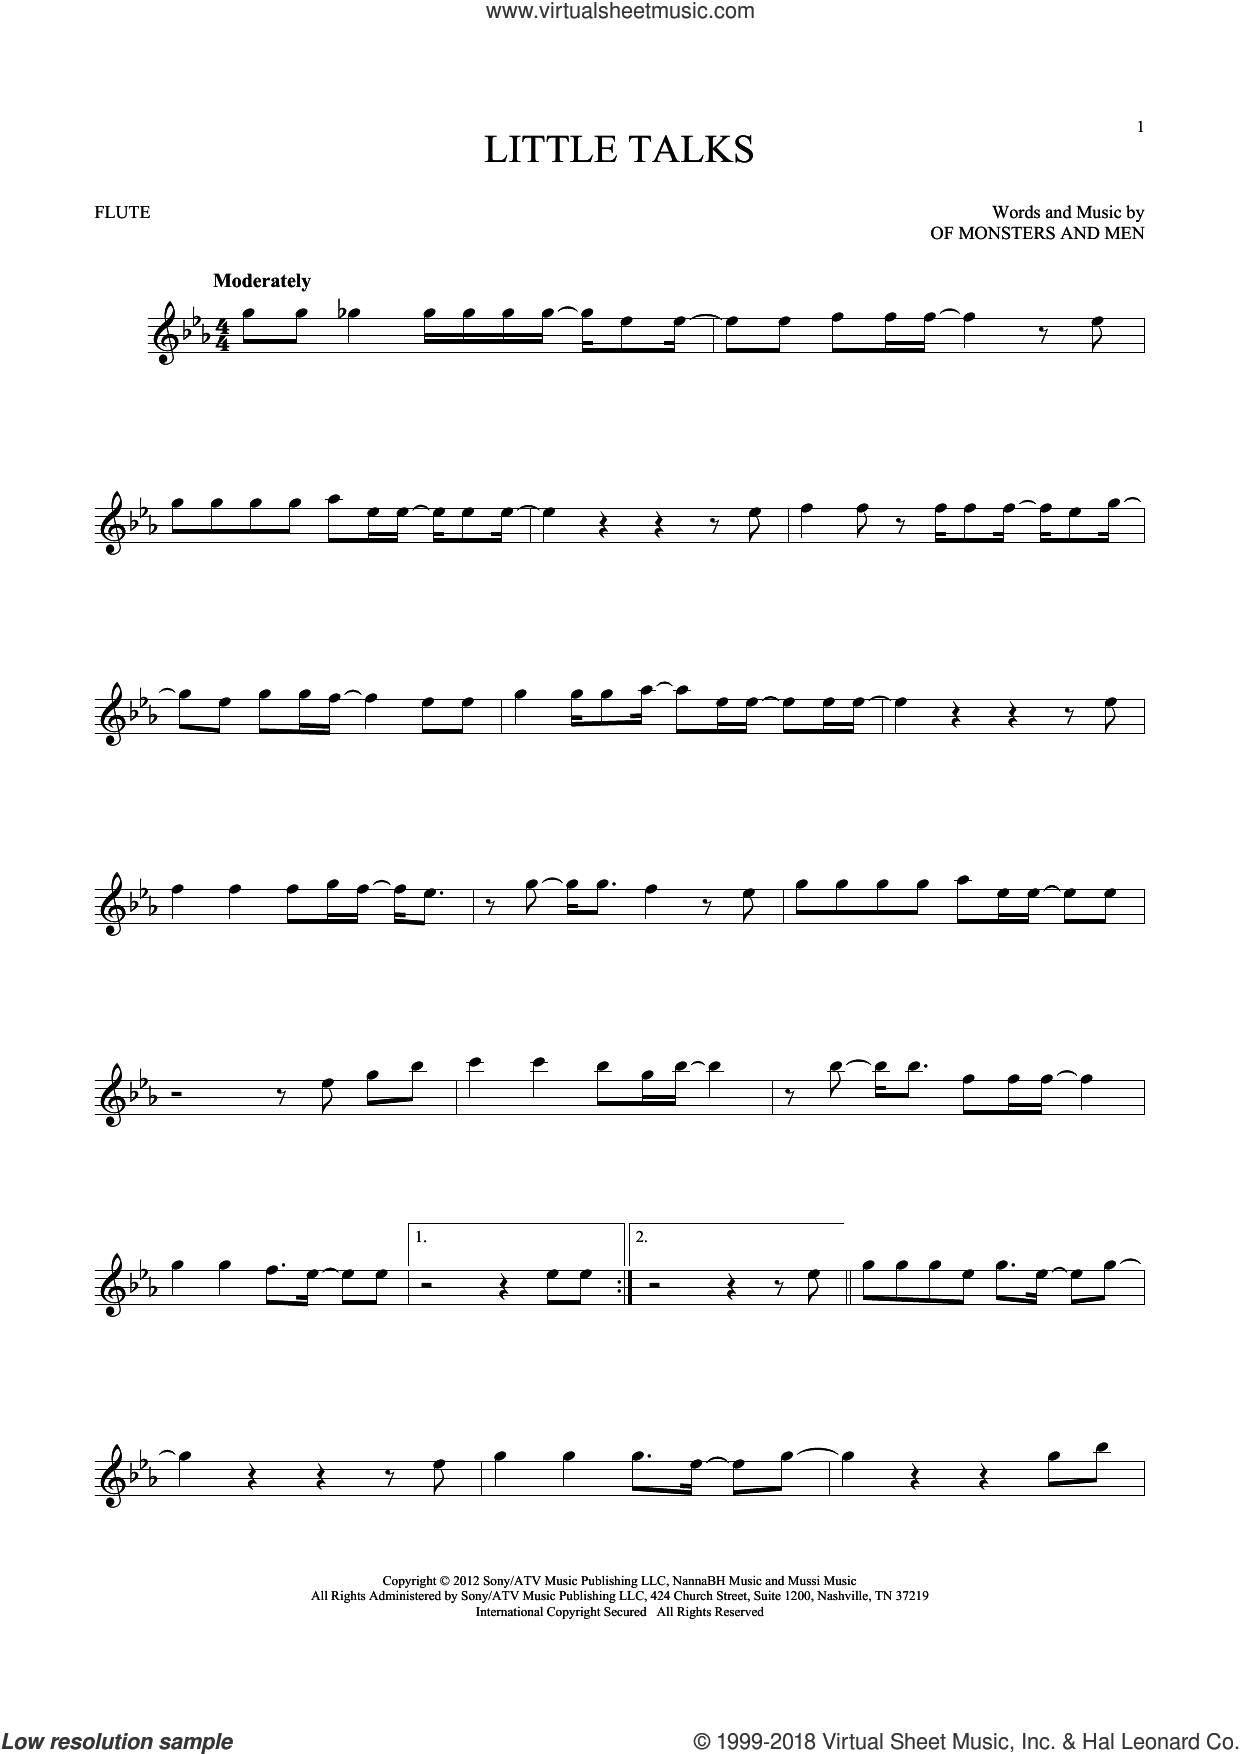 Little Talks sheet music for flute solo by Of Monsters And Men, intermediate skill level